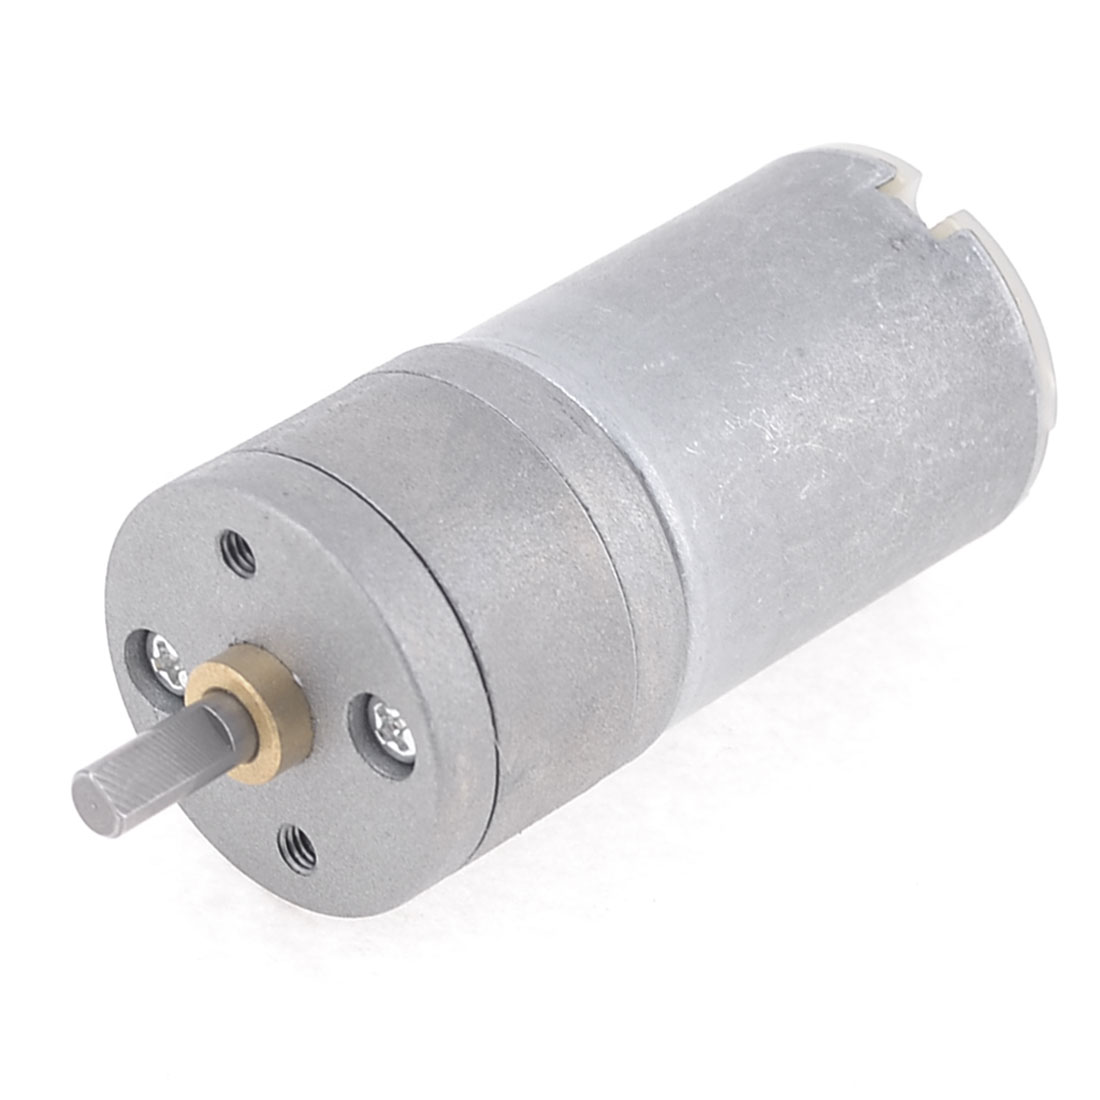 12V 1500RPM 4mm Shaft Dia Synchronous Reduction DC Gearbox Geared Motor